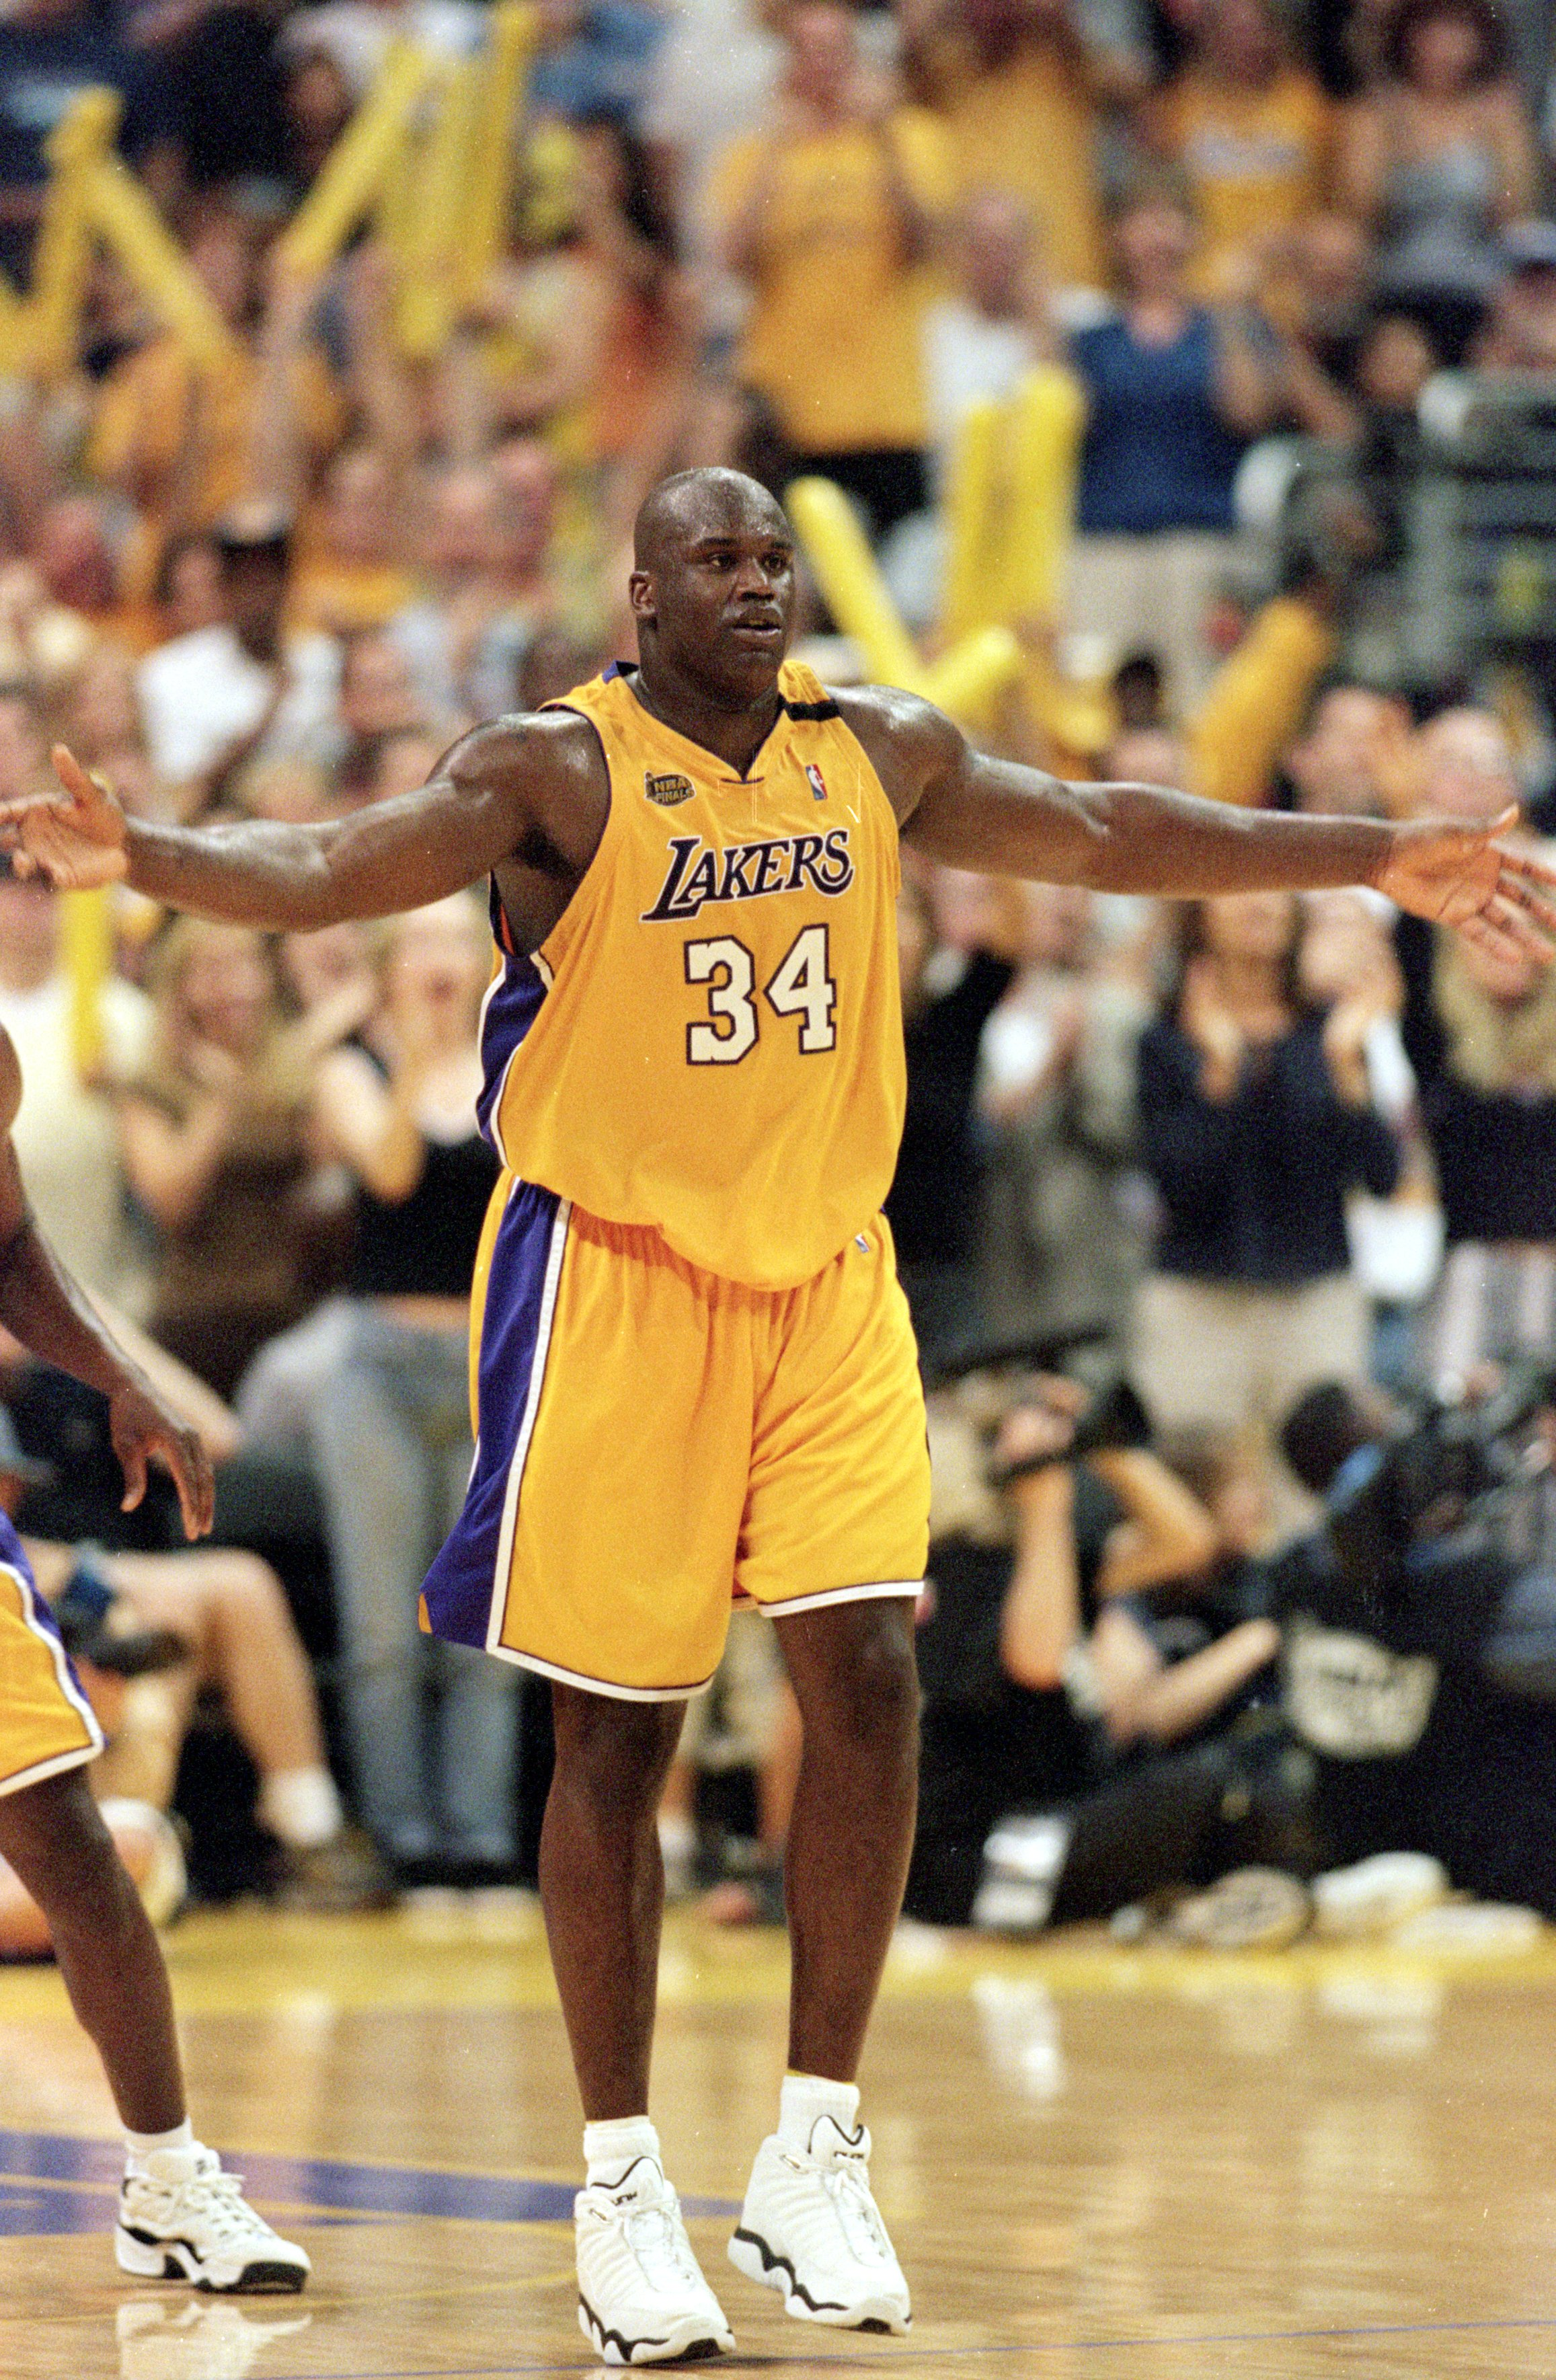 Shaq Funny Moments : funny, moments, Shaquille, O'Neal, Retires:, Unforgettable, Moments, Shaqtus', Career, Bleacher, Report, Latest, News,, Videos, Highlights